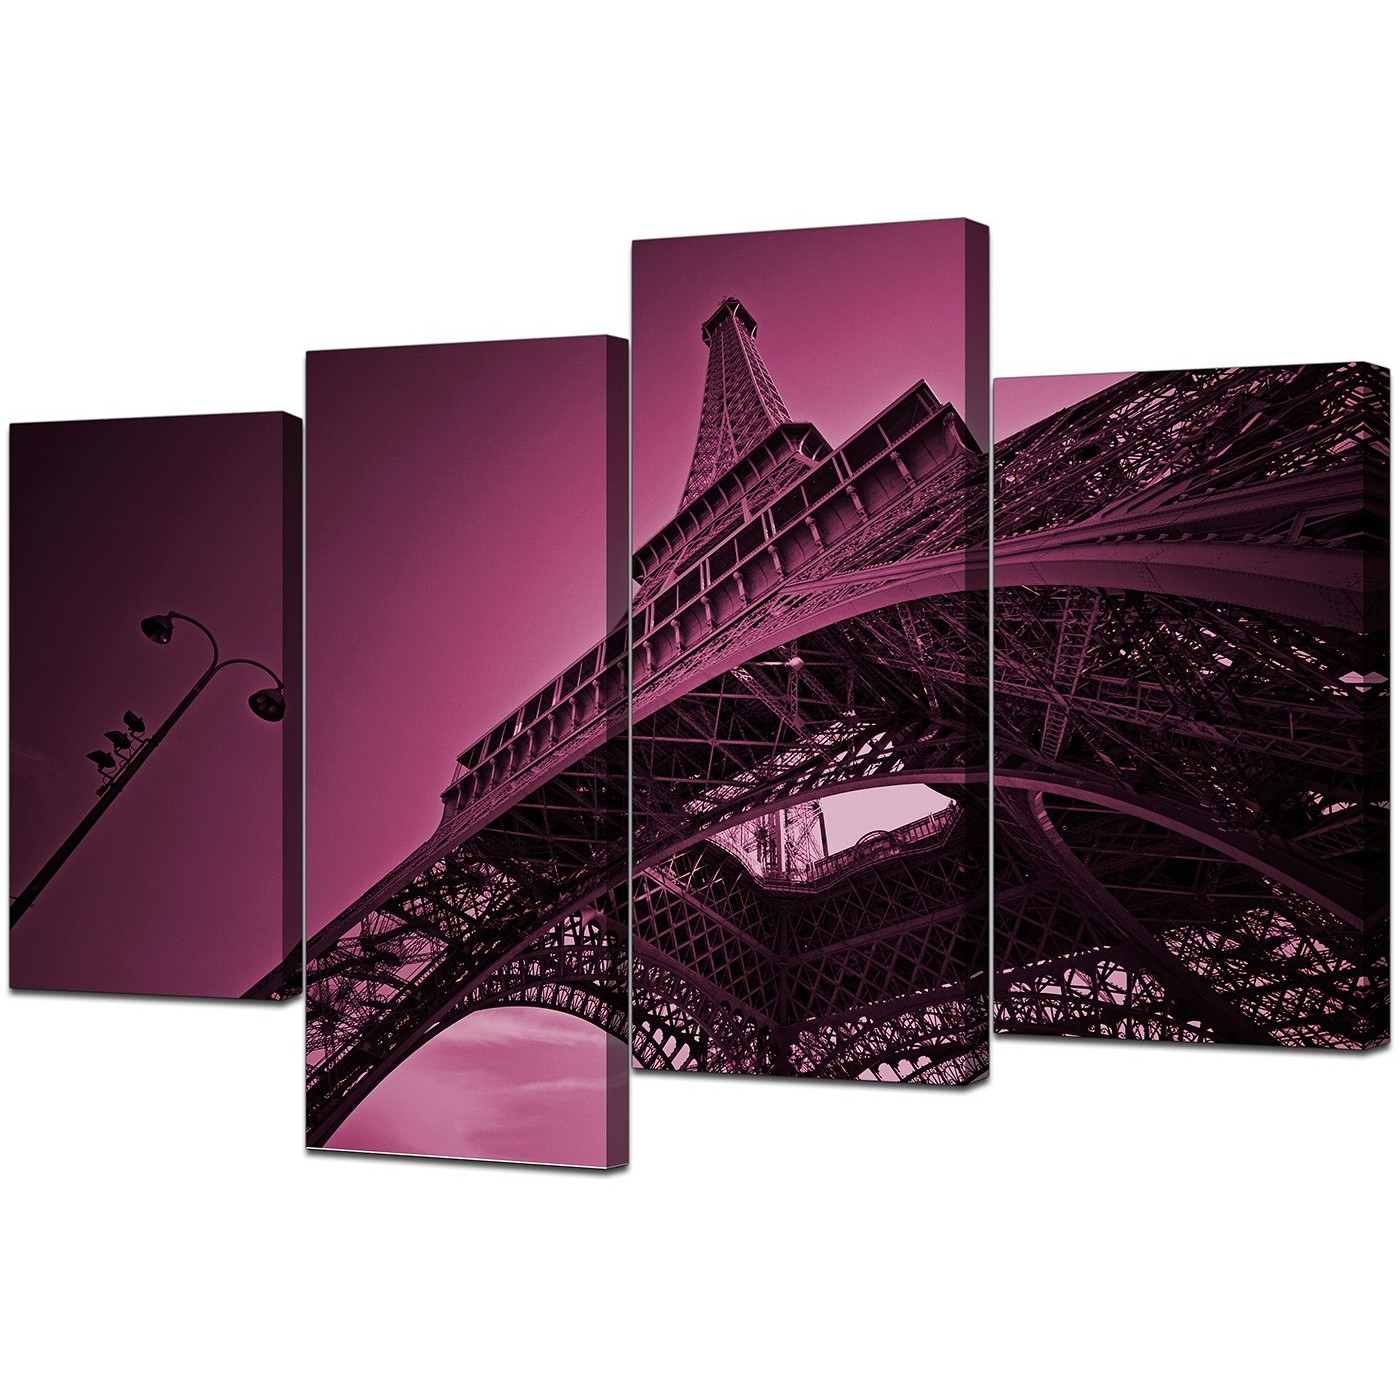 2018 Eiffel Tower Canvas Wall Art In Plum – For Bedroom Within Eiffel Tower Canvas Wall Art (Gallery 10 of 15)